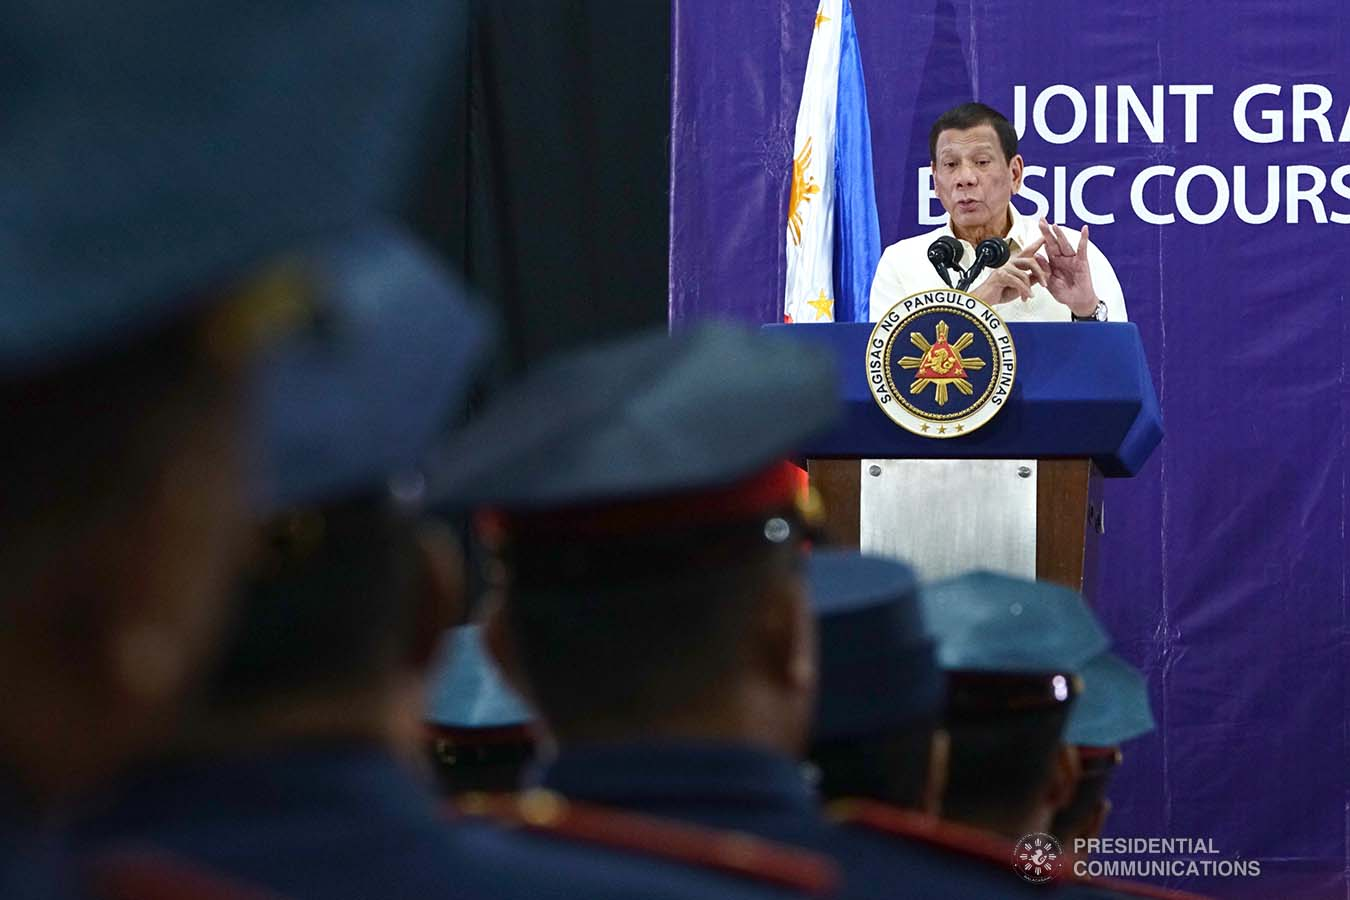 President Rodrigo Roa Duterte delivers a speech during the joint graduation ceremony of the Public Safety Officers Basic Course (PSOBC) Class 2019-07 and the Public Safety Officers Advance Course (PSOAC) Class 2019-18 at the Arcadia Active Lifestyle Center in Davao City on February 20, 2020. JOEY DALUMPINES/PRESIDENTIAL PHOTO